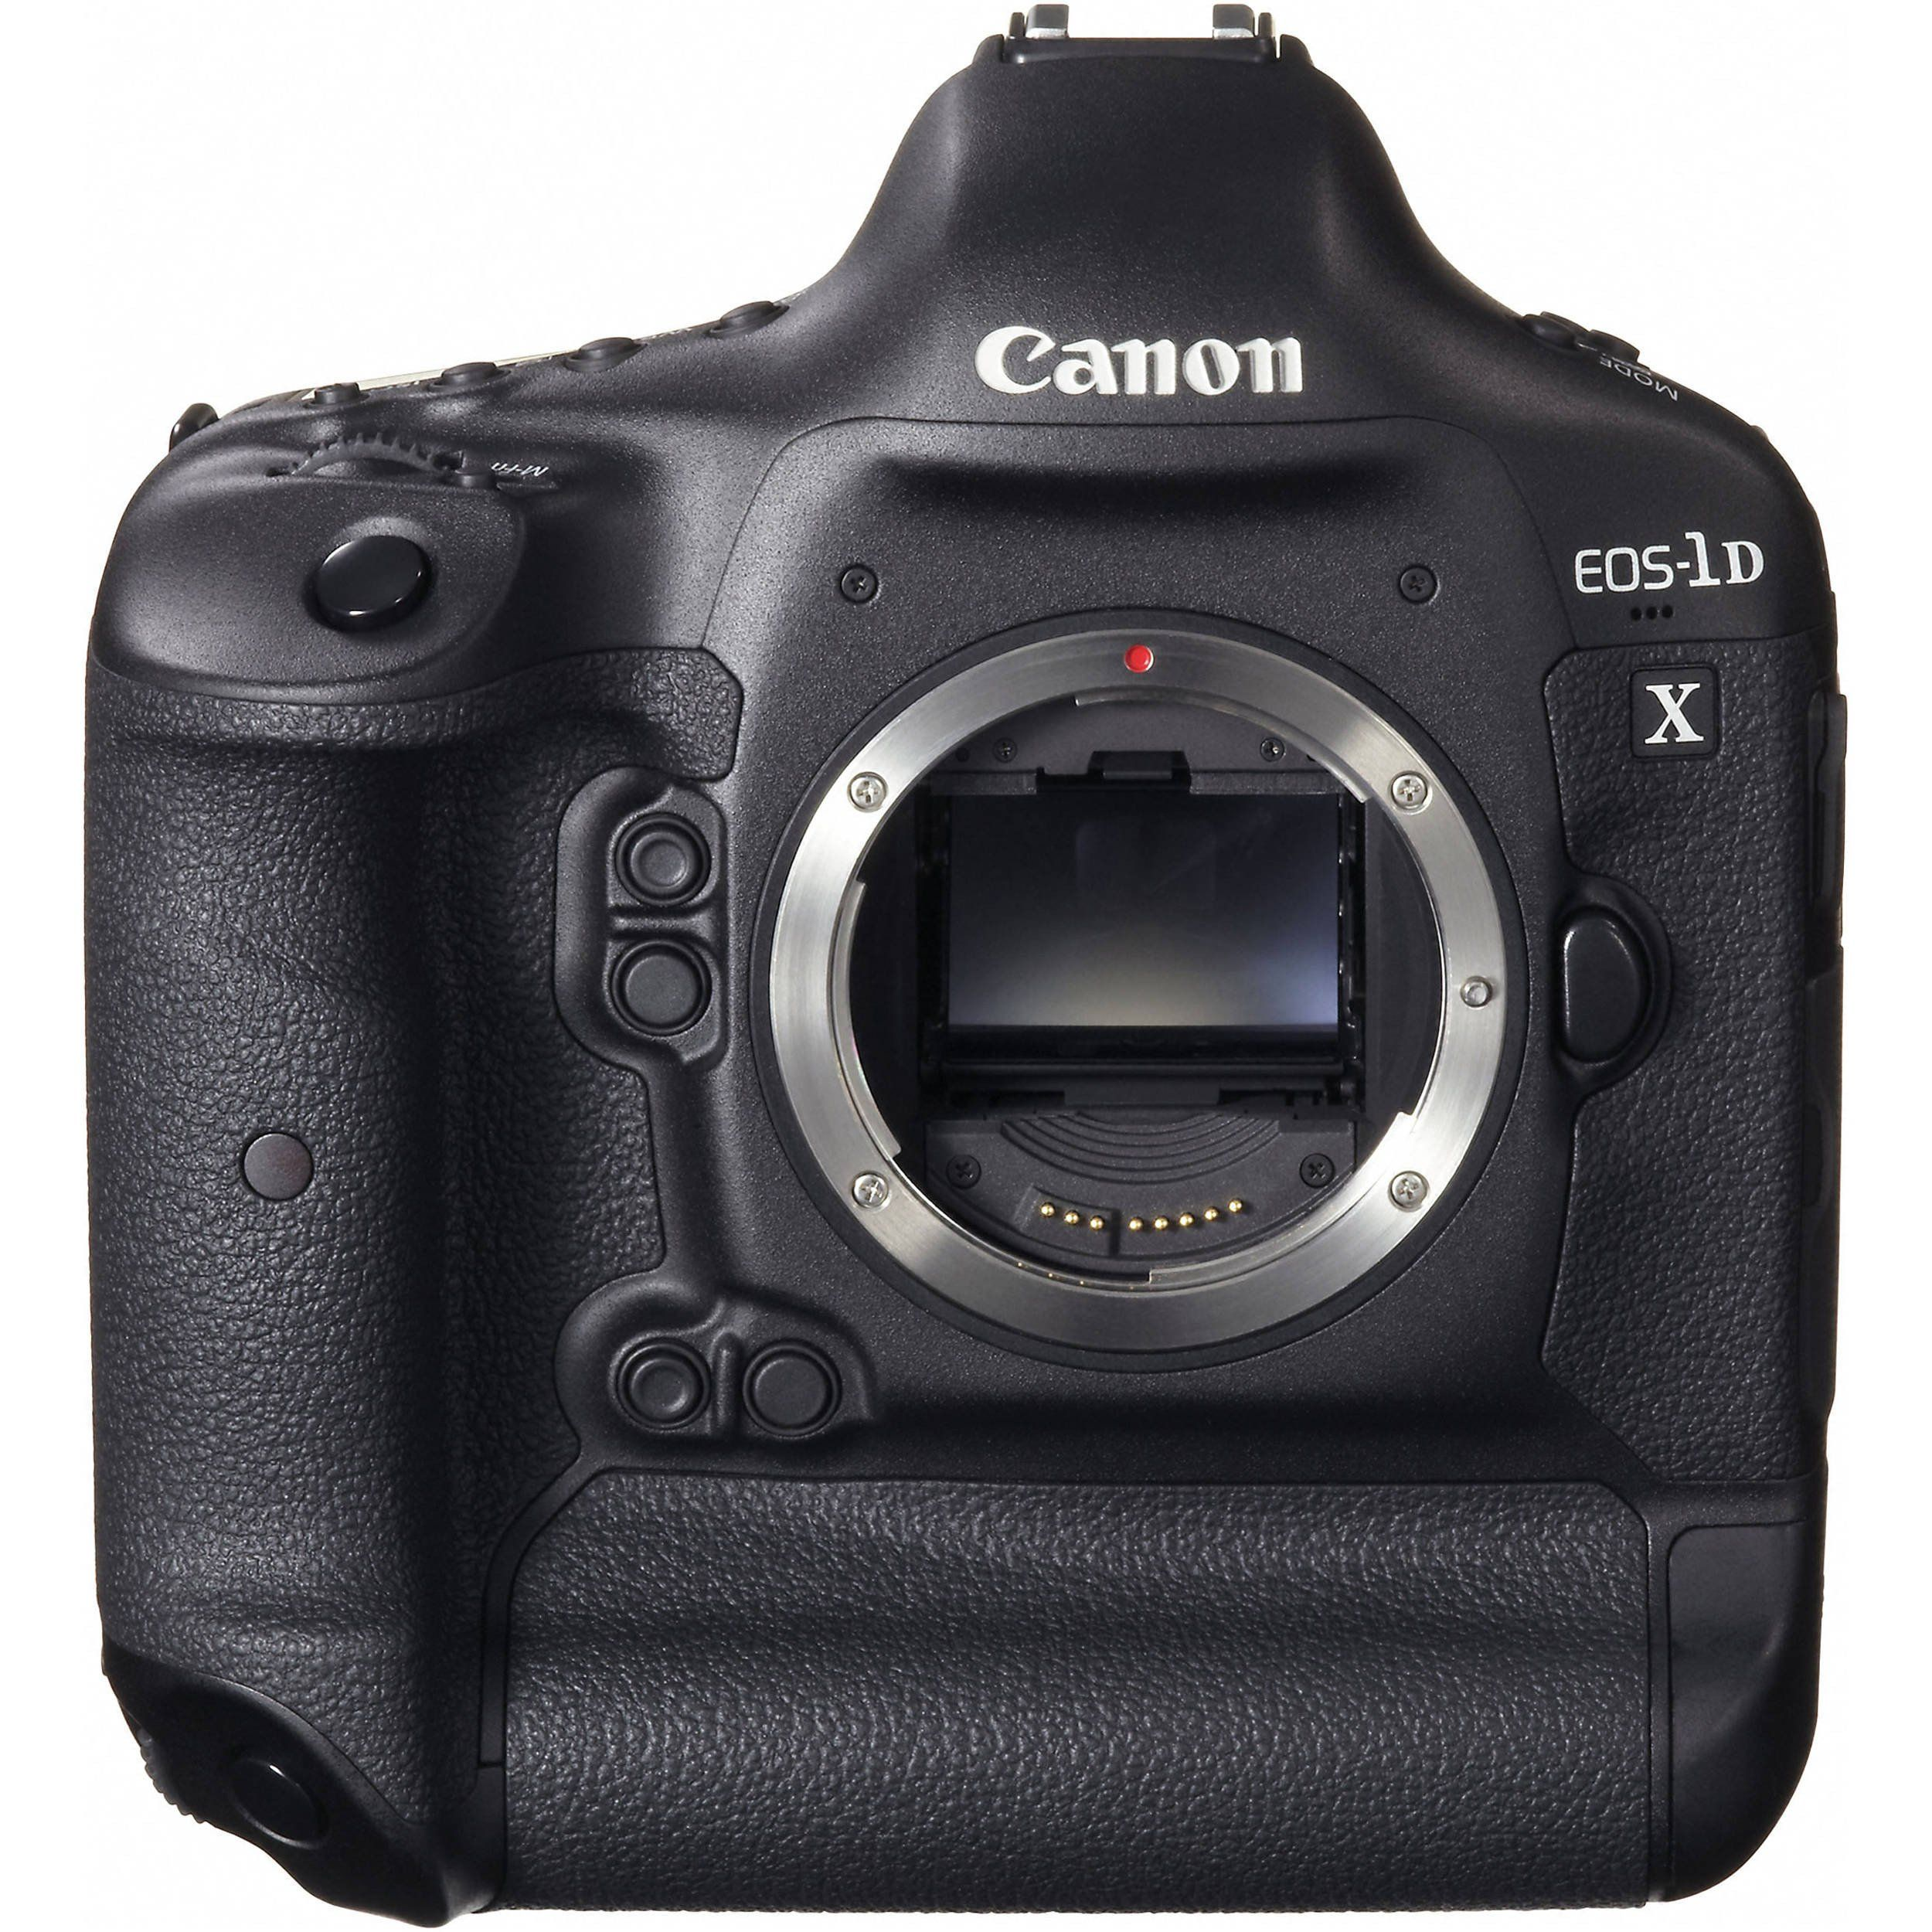 Used Canon EOS 1Dx Full-Frame DSLR Body | Products | Pinterest ...